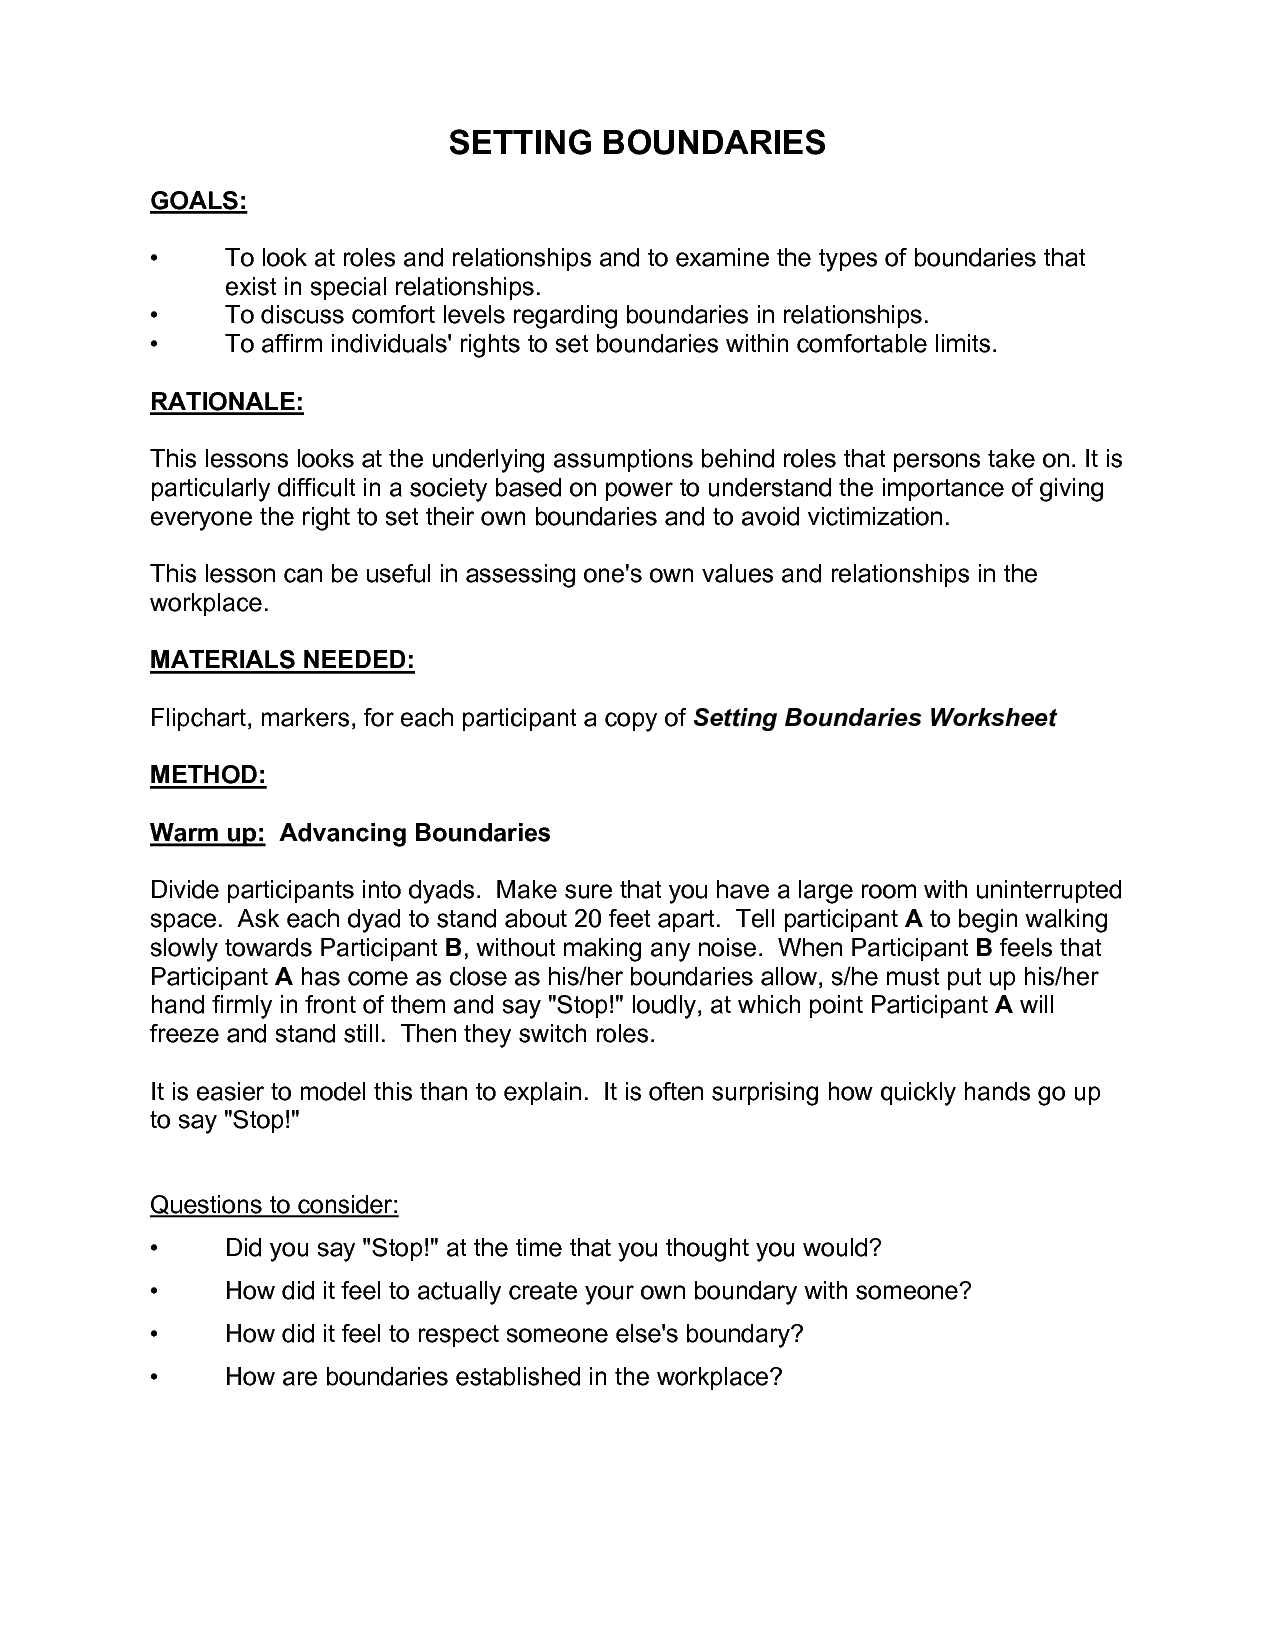 Free Worksheet Healthy Boundaries Worksheet healthyboundariesworksheet setting boundaries worksheet worksheet